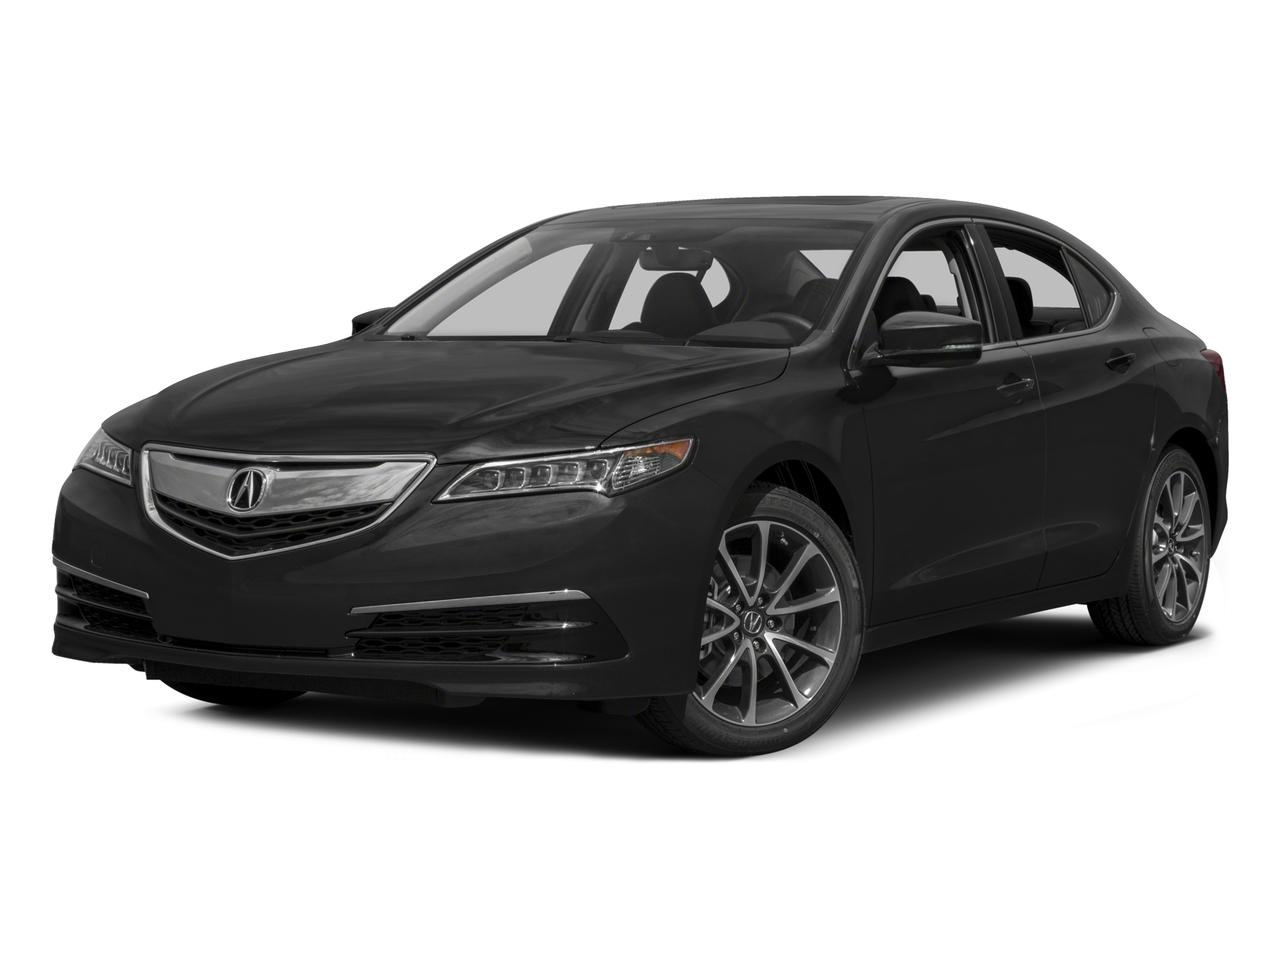 2015 Acura TLX Vehicle Photo in Lake Katrine, NY 12449